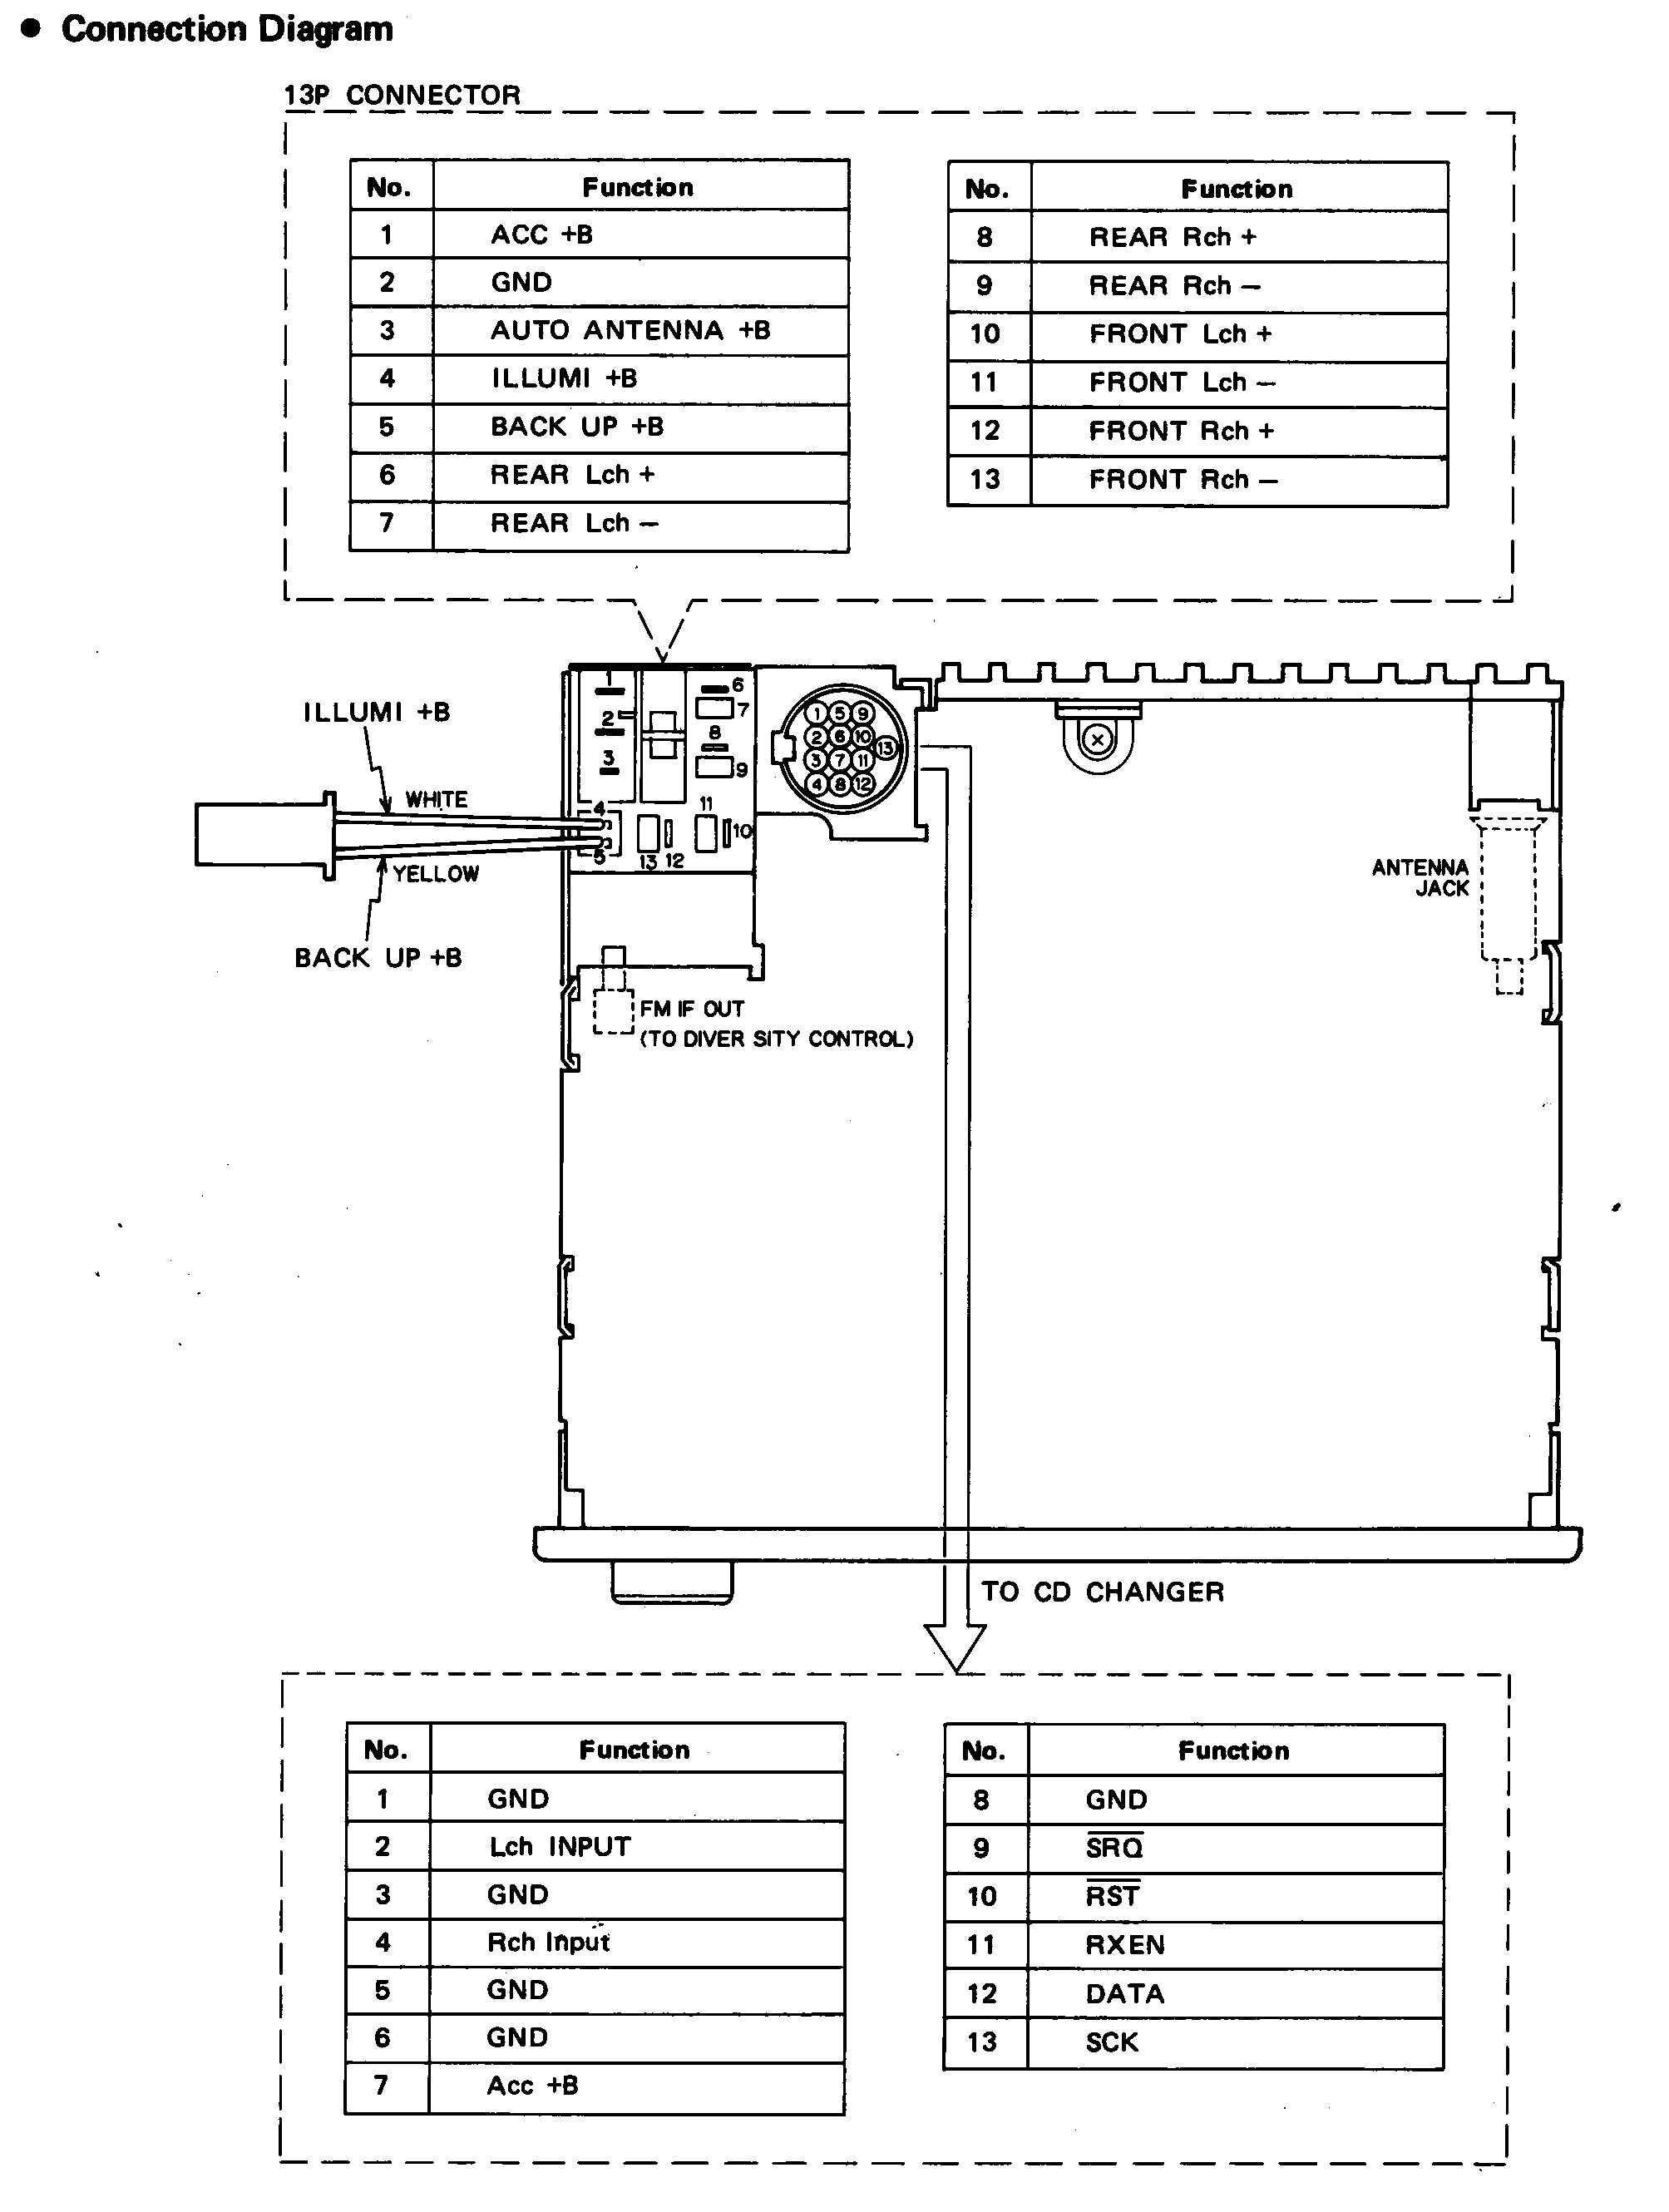 Car Audio Wiring Diagram Amplifier from lh4.googleusercontent.com